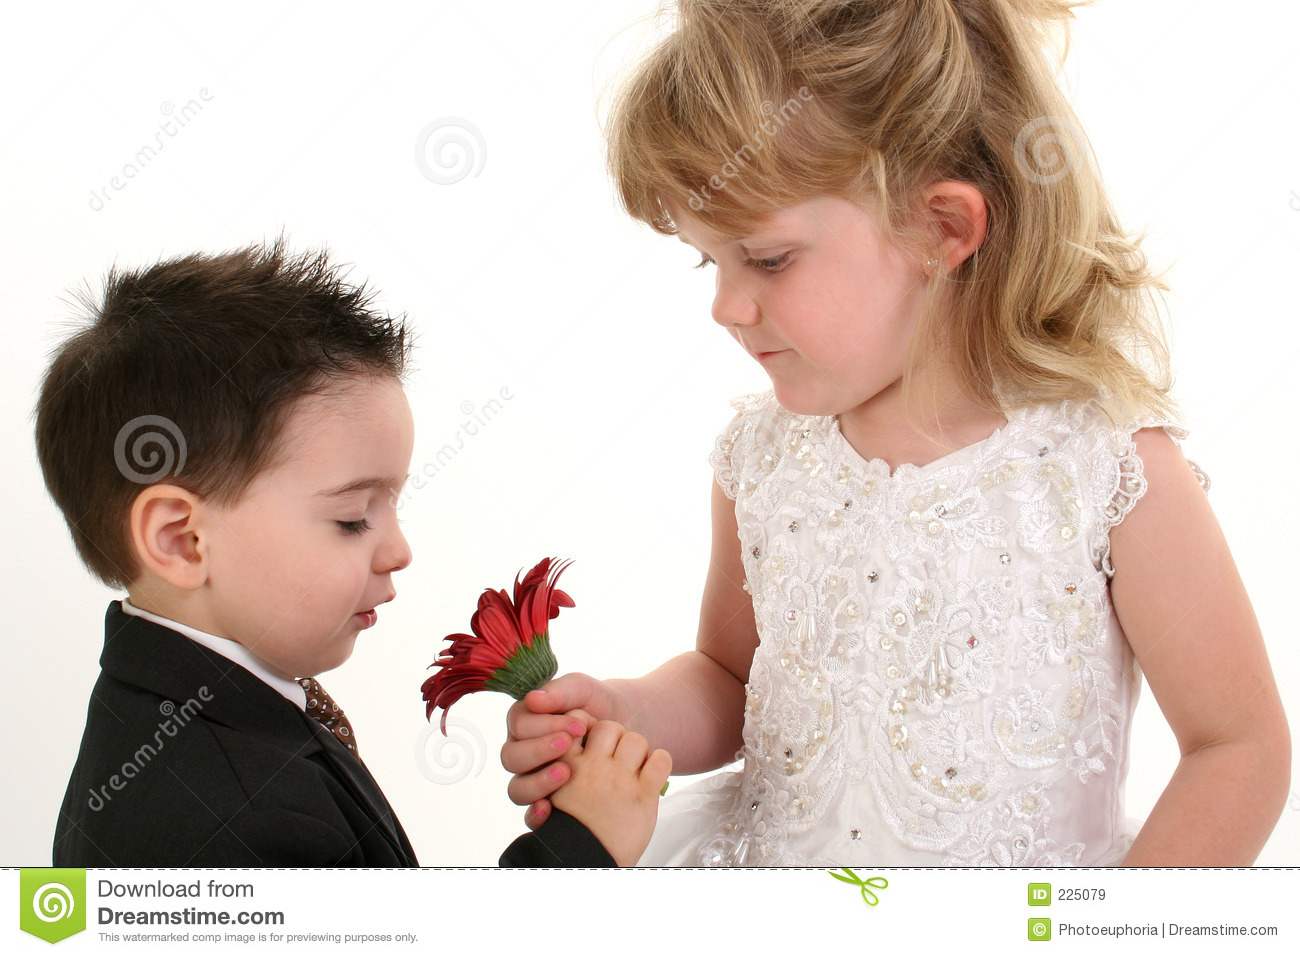 Download Adorable Young Children Smelling Daisy Together Stock Image - Image of blond, black: 225079